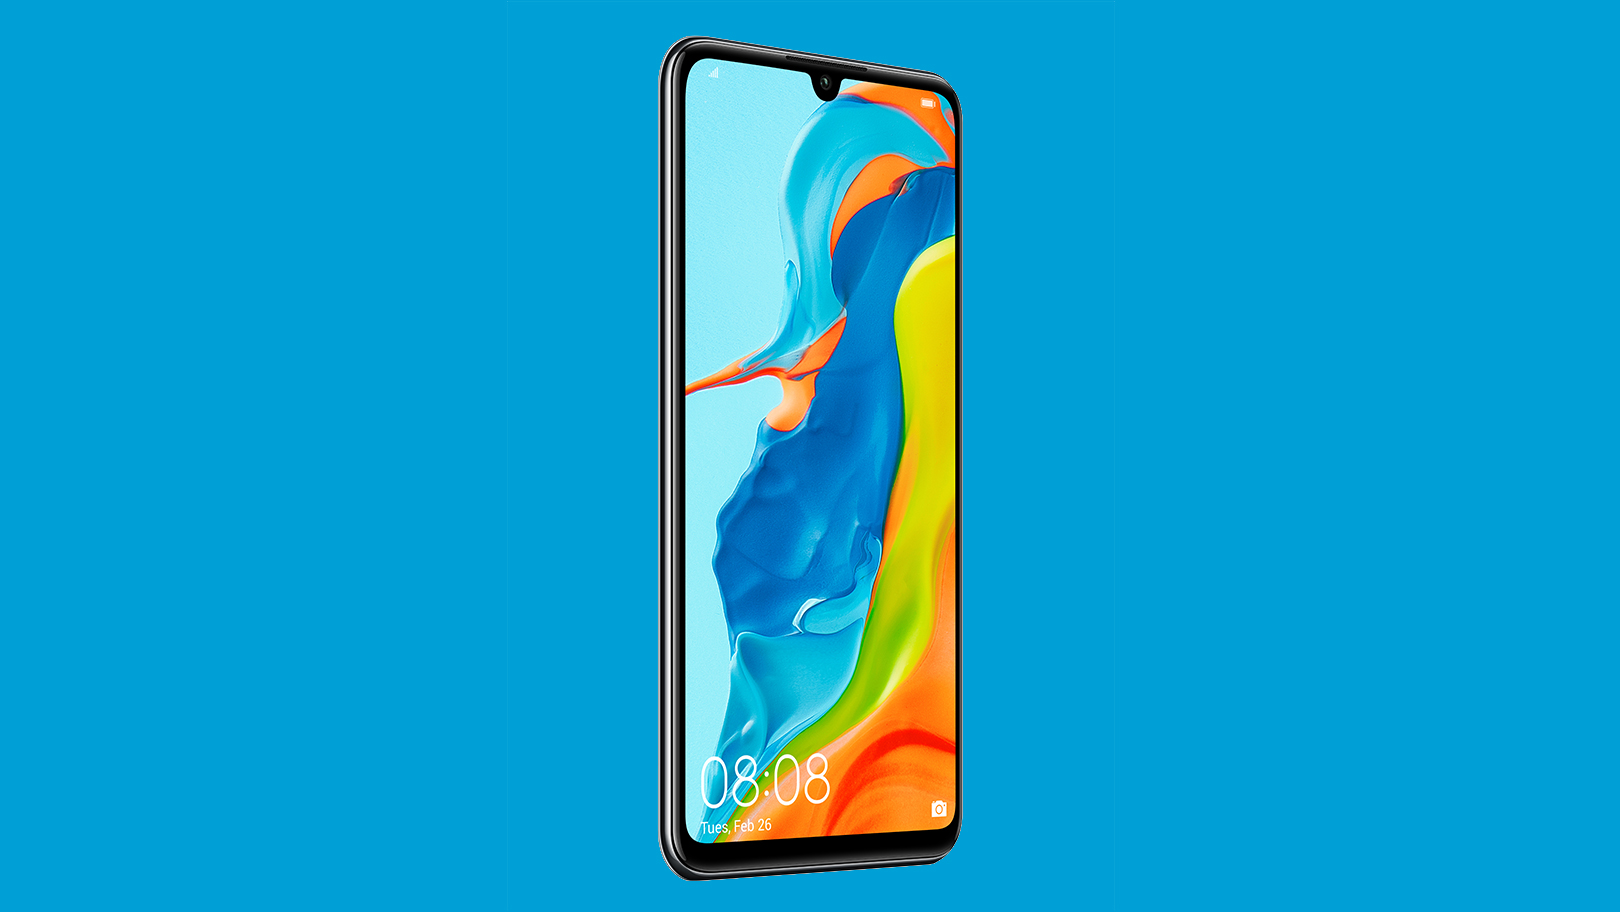 Huawei P30 Lite best features: How to use the camera, facial